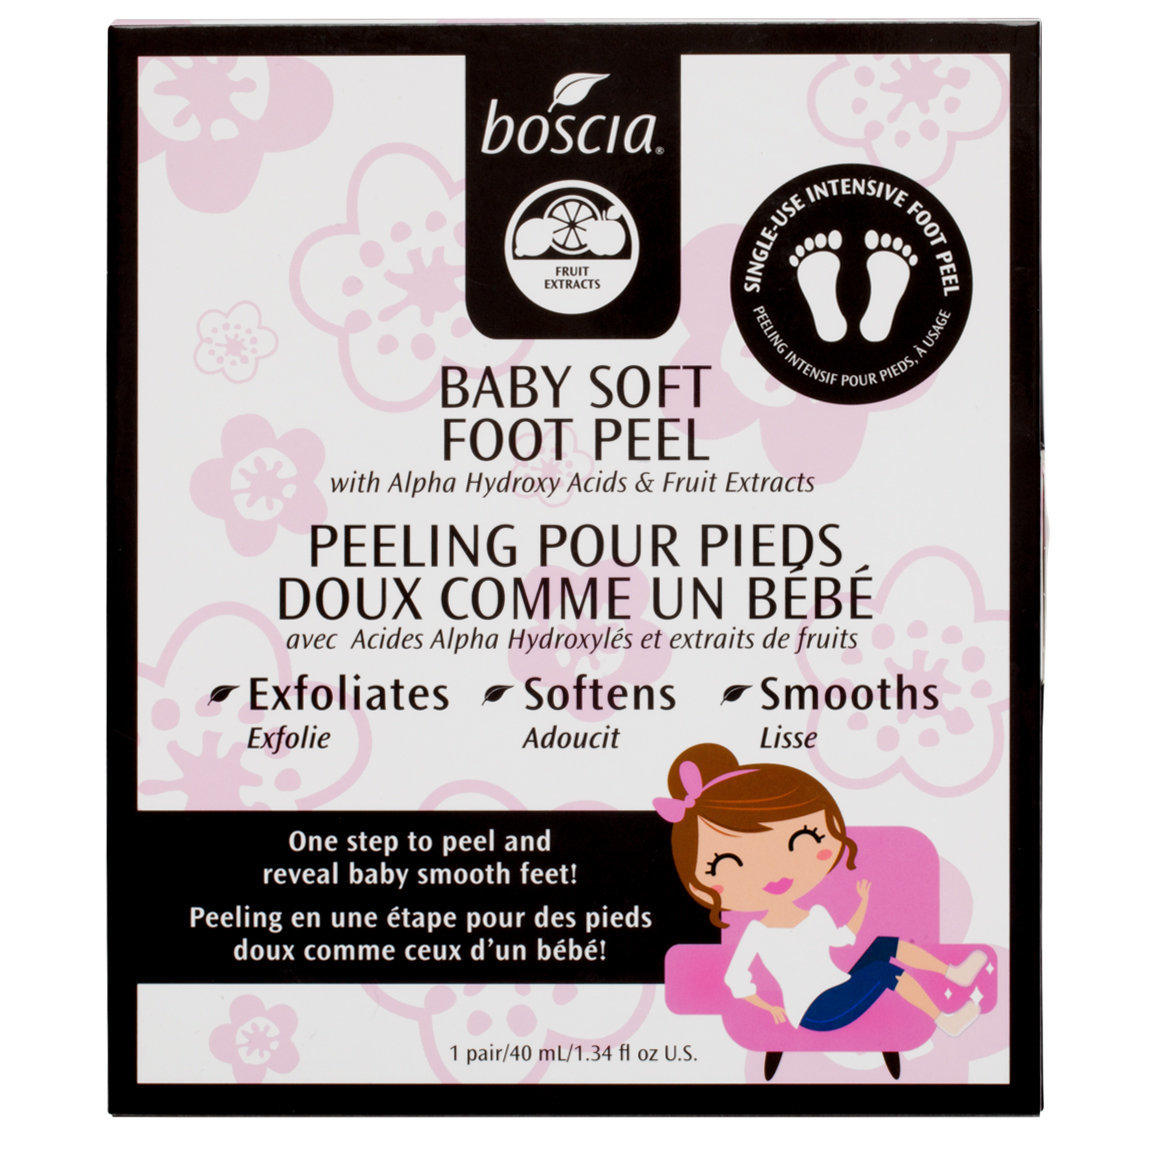 boscia Baby Soft Foot Peel product smear.